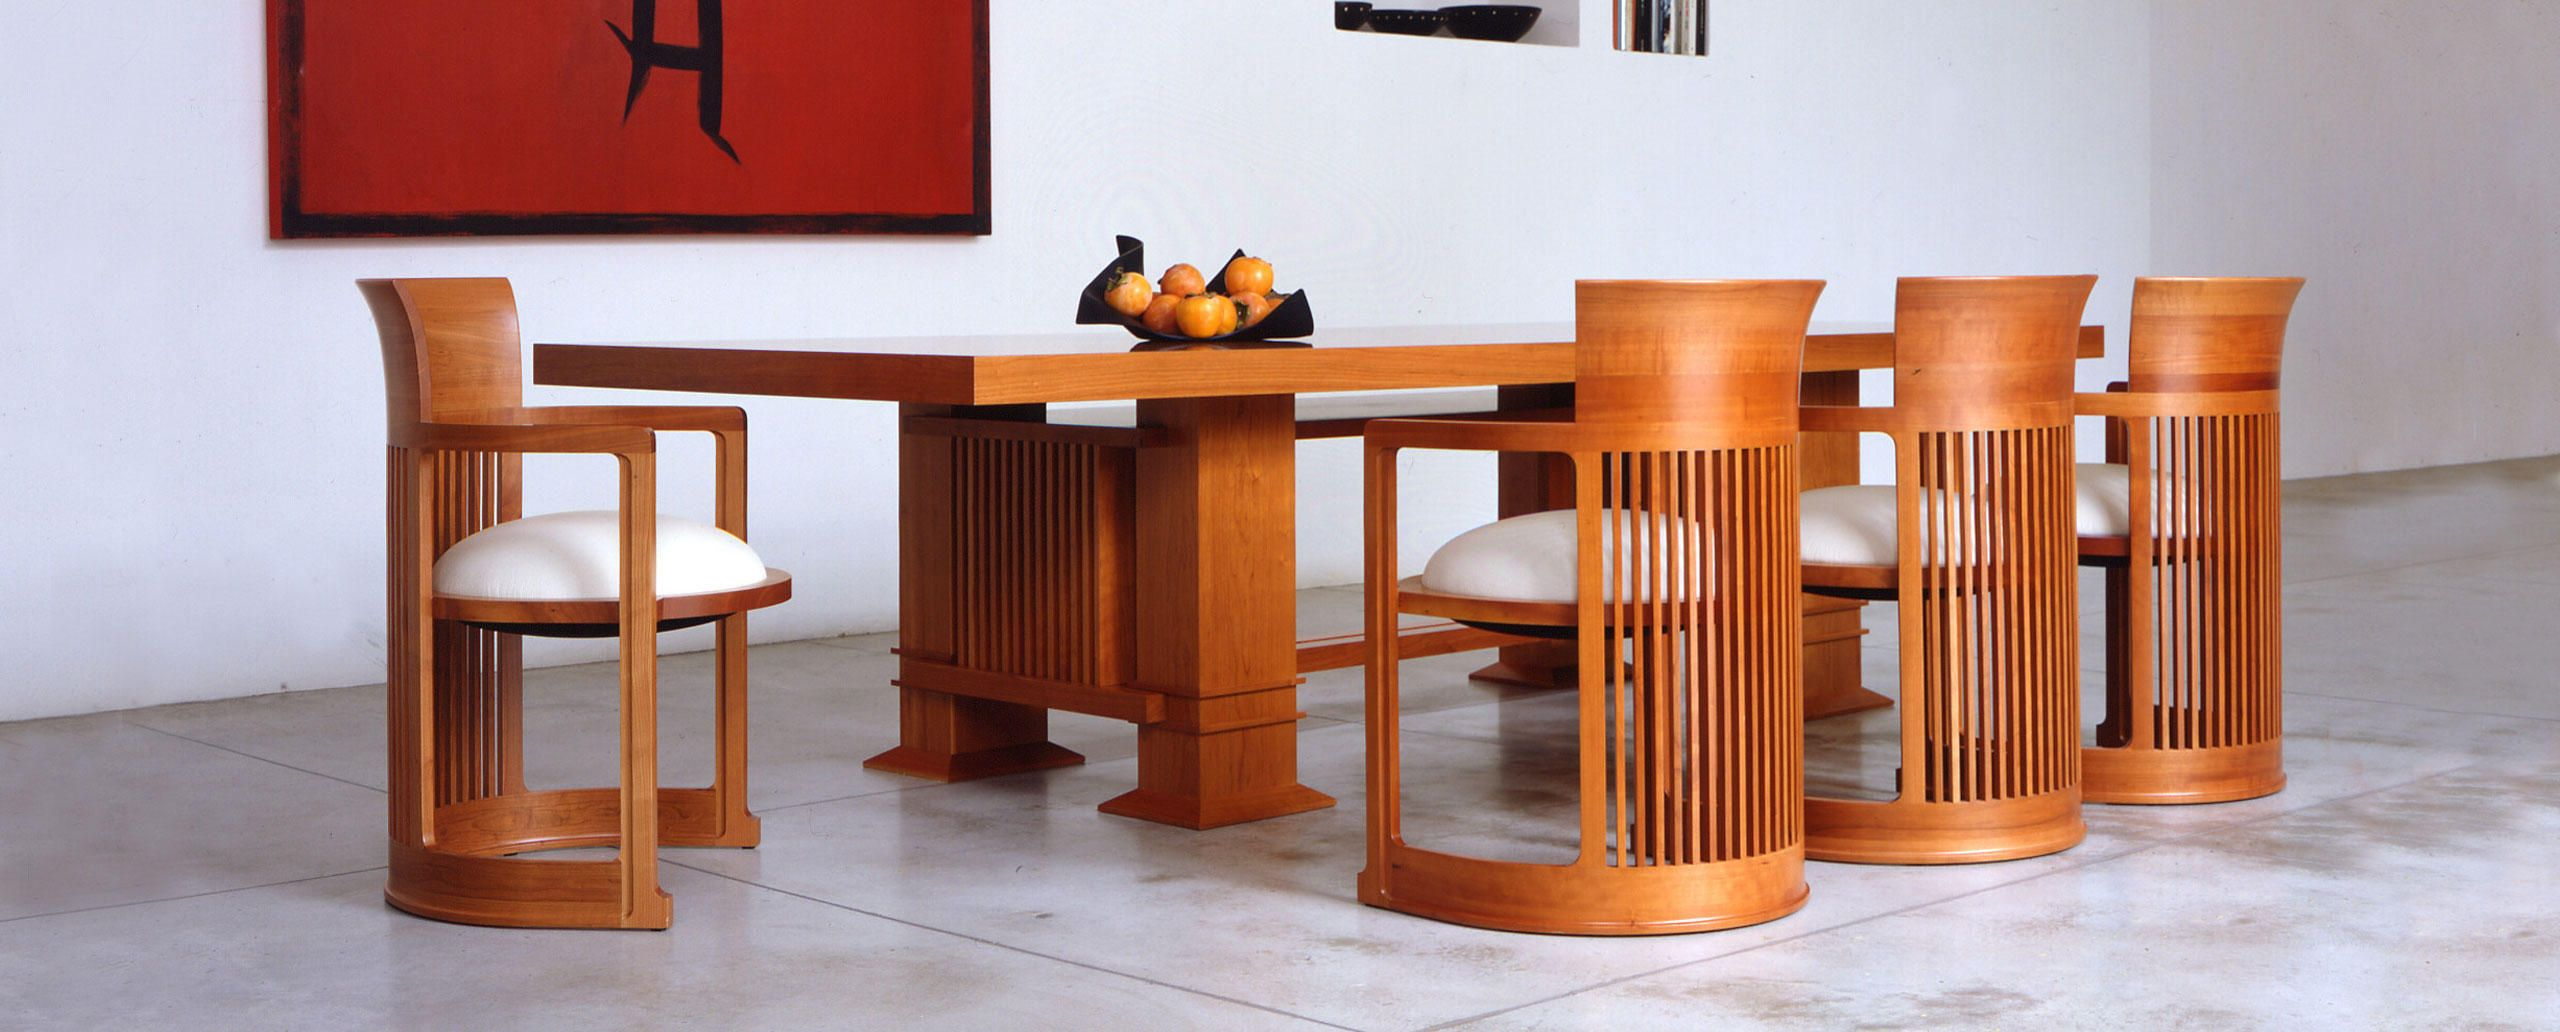 Frank Lloyd Wright Allen Dining Room Table 1917 And Barrel Chair 1937